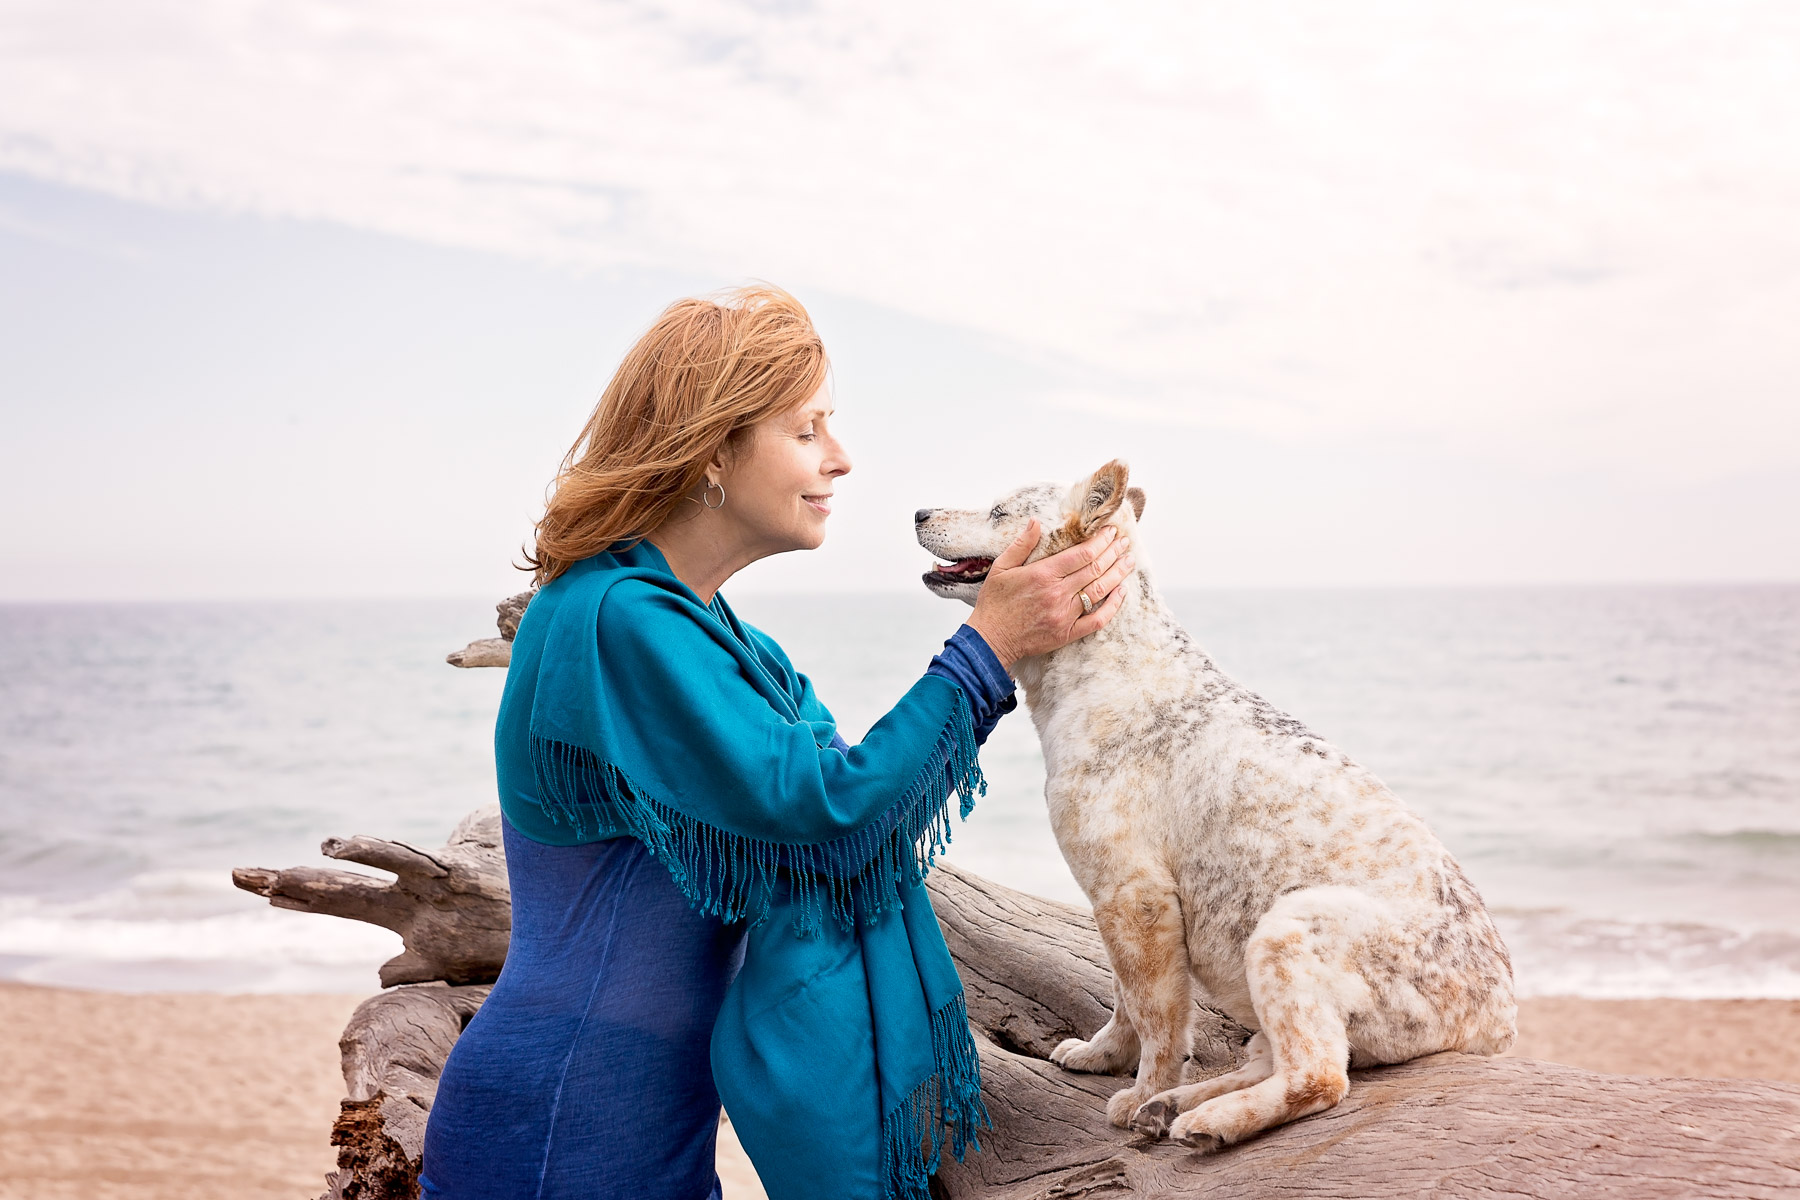 woman-with-dog-beach-ocean-photography-roxys-remedies-dog-shampoo-campaign-adweek-lifestyle-photographer.jpg